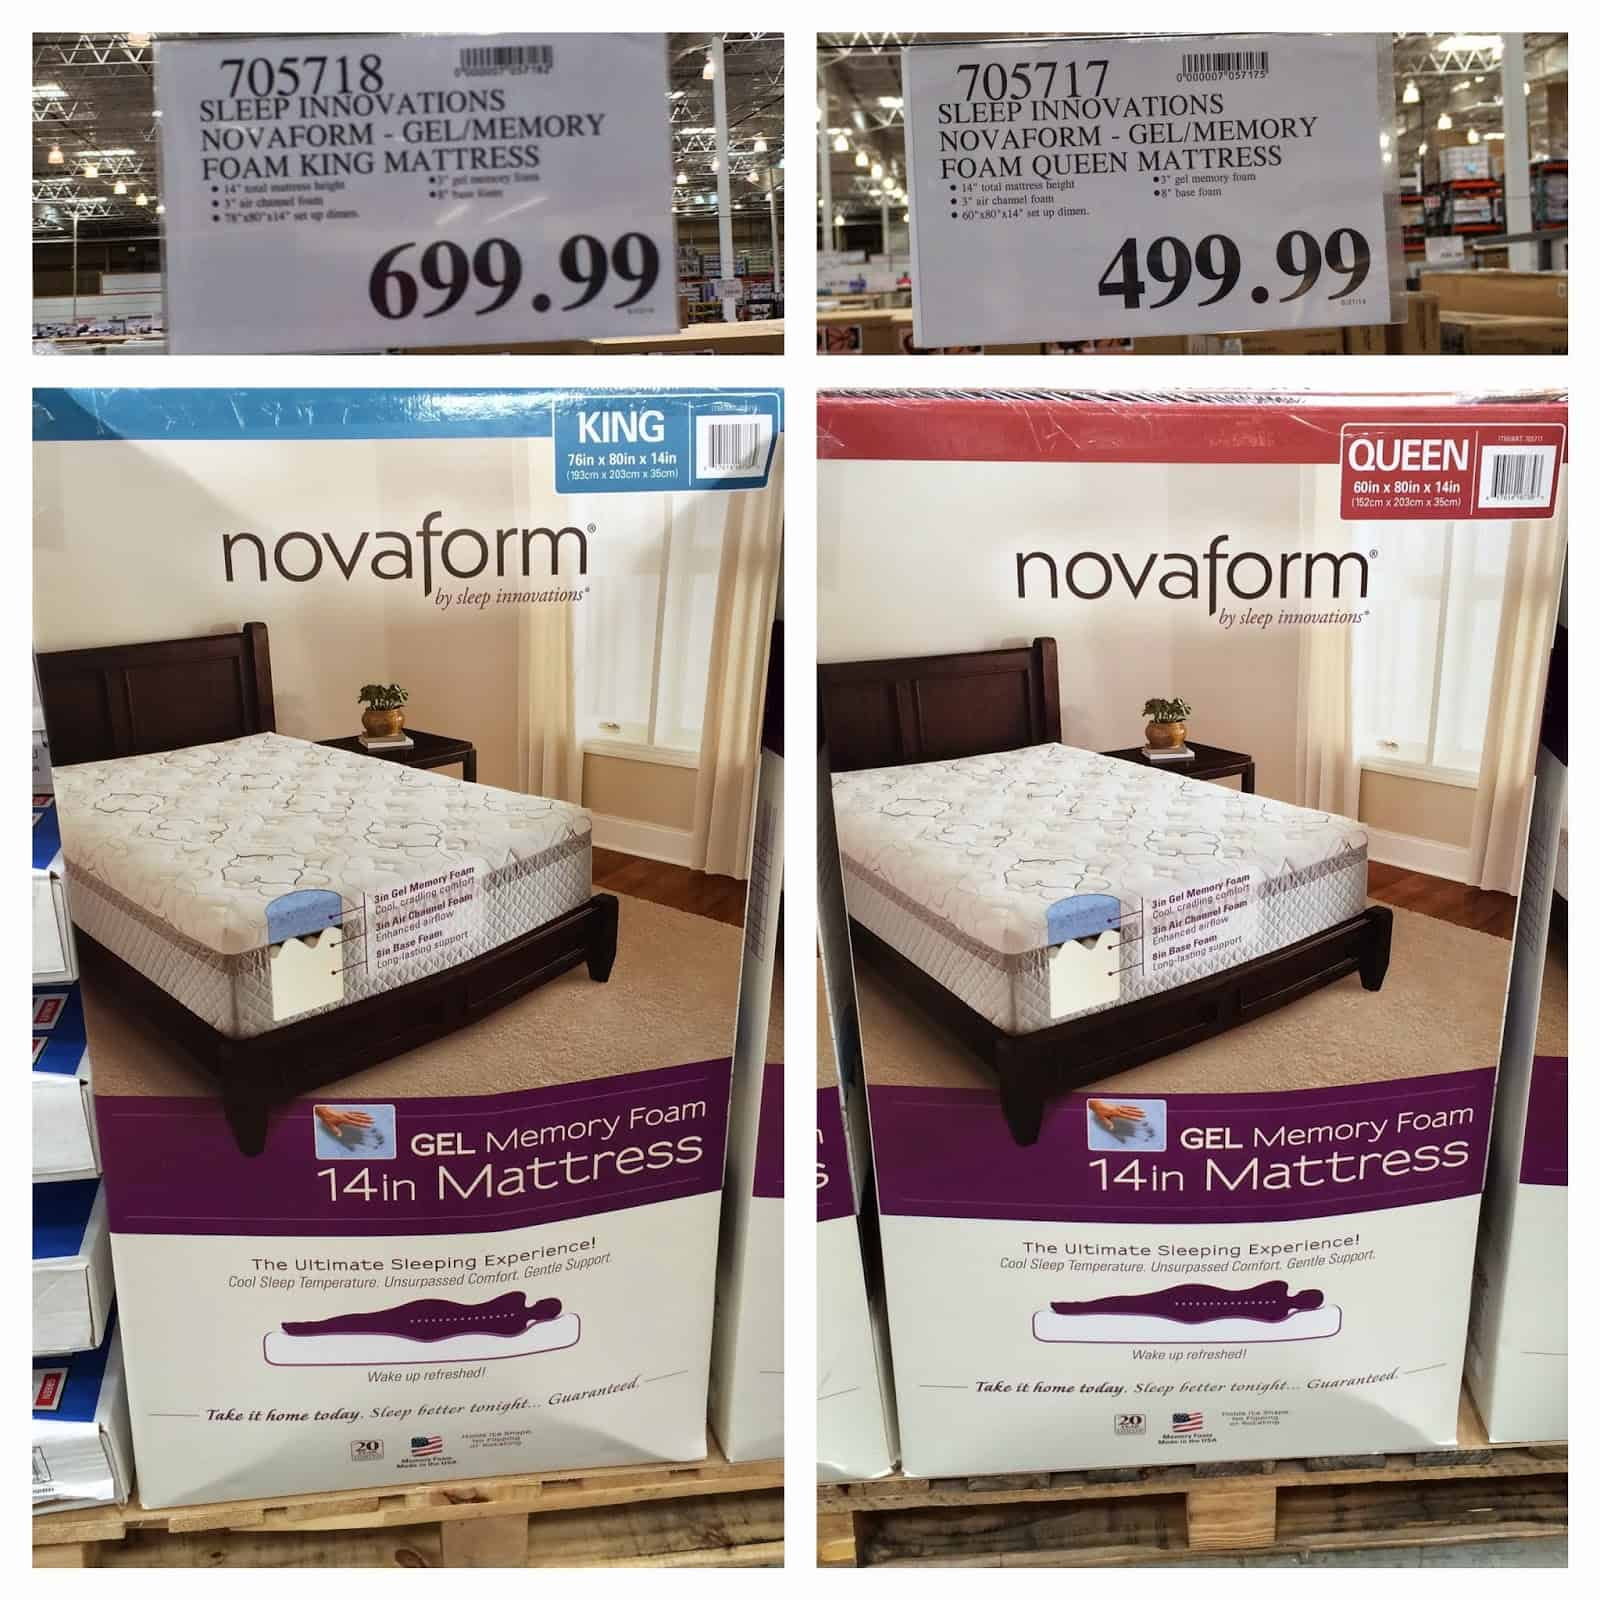 consumer amazing collection mattresses reports best about mattress luxury remodel modern of